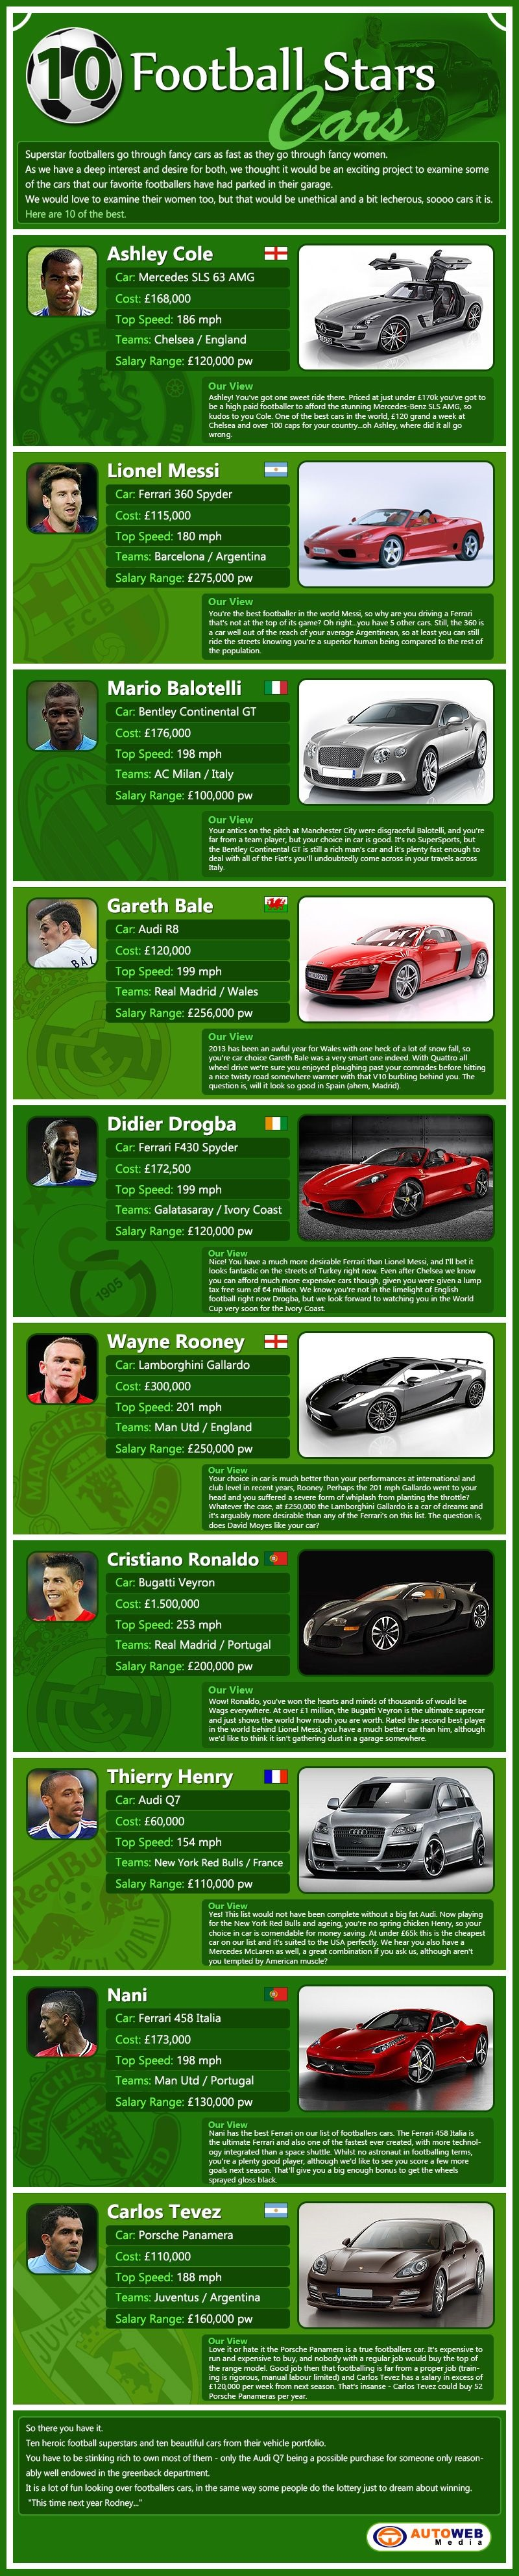 football_stars_cars-infographic